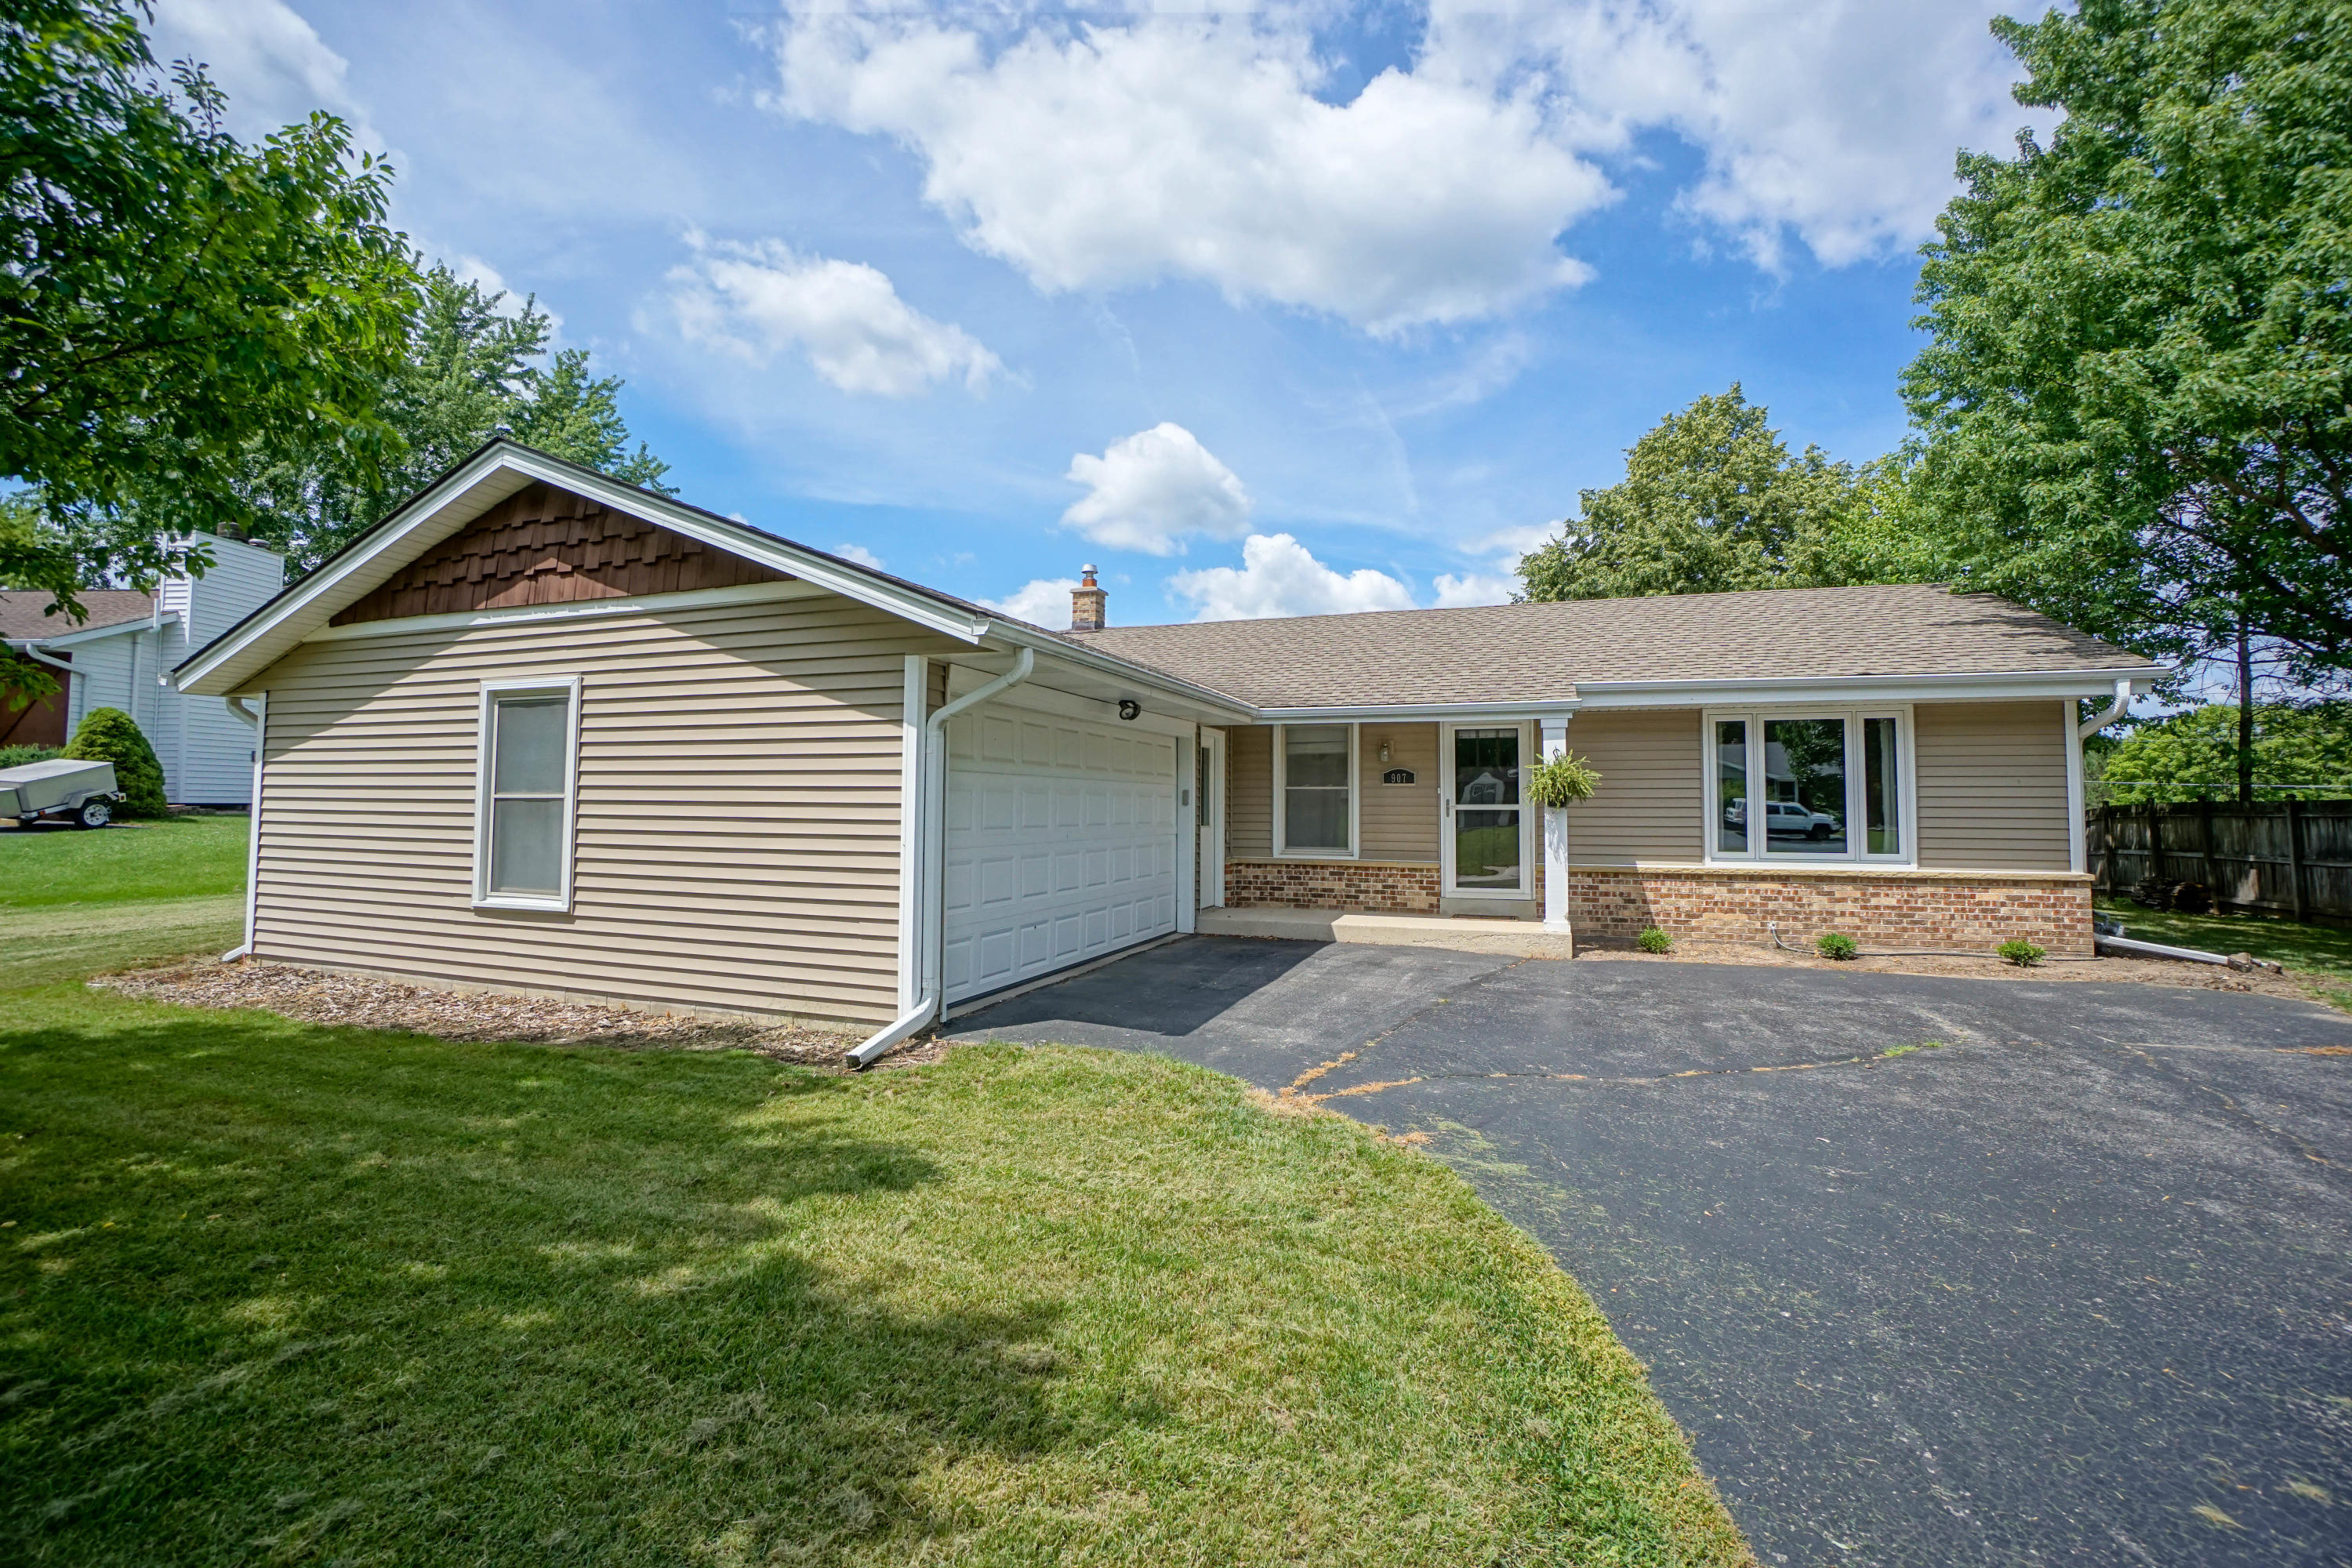 907 Manchester Ct, Hartland, Wisconsin 53029, 3 Bedrooms Bedrooms, 5 Rooms Rooms,1 BathroomBathrooms,Single-Family,For Sale,Manchester Ct,1751591